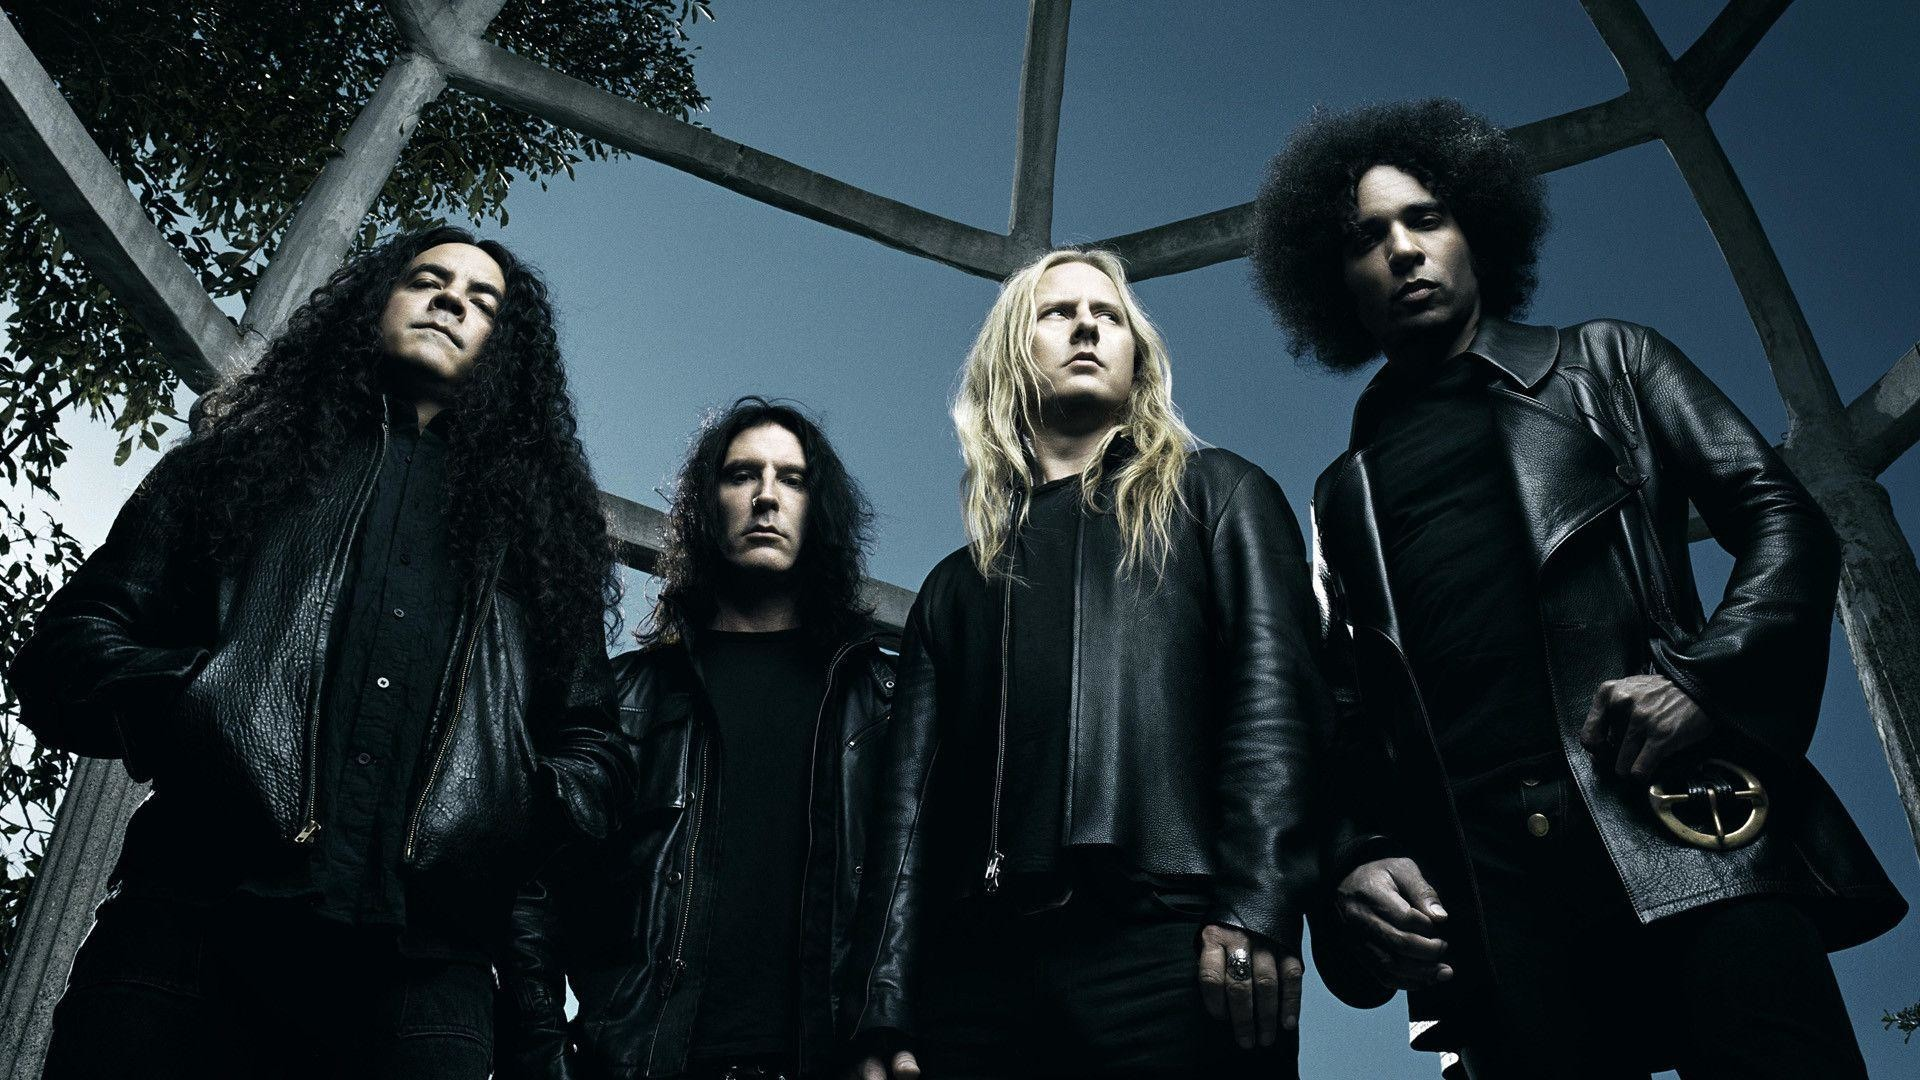 1920x1080 Alice in Chains Band Wallpaper - Wide Wallpapers